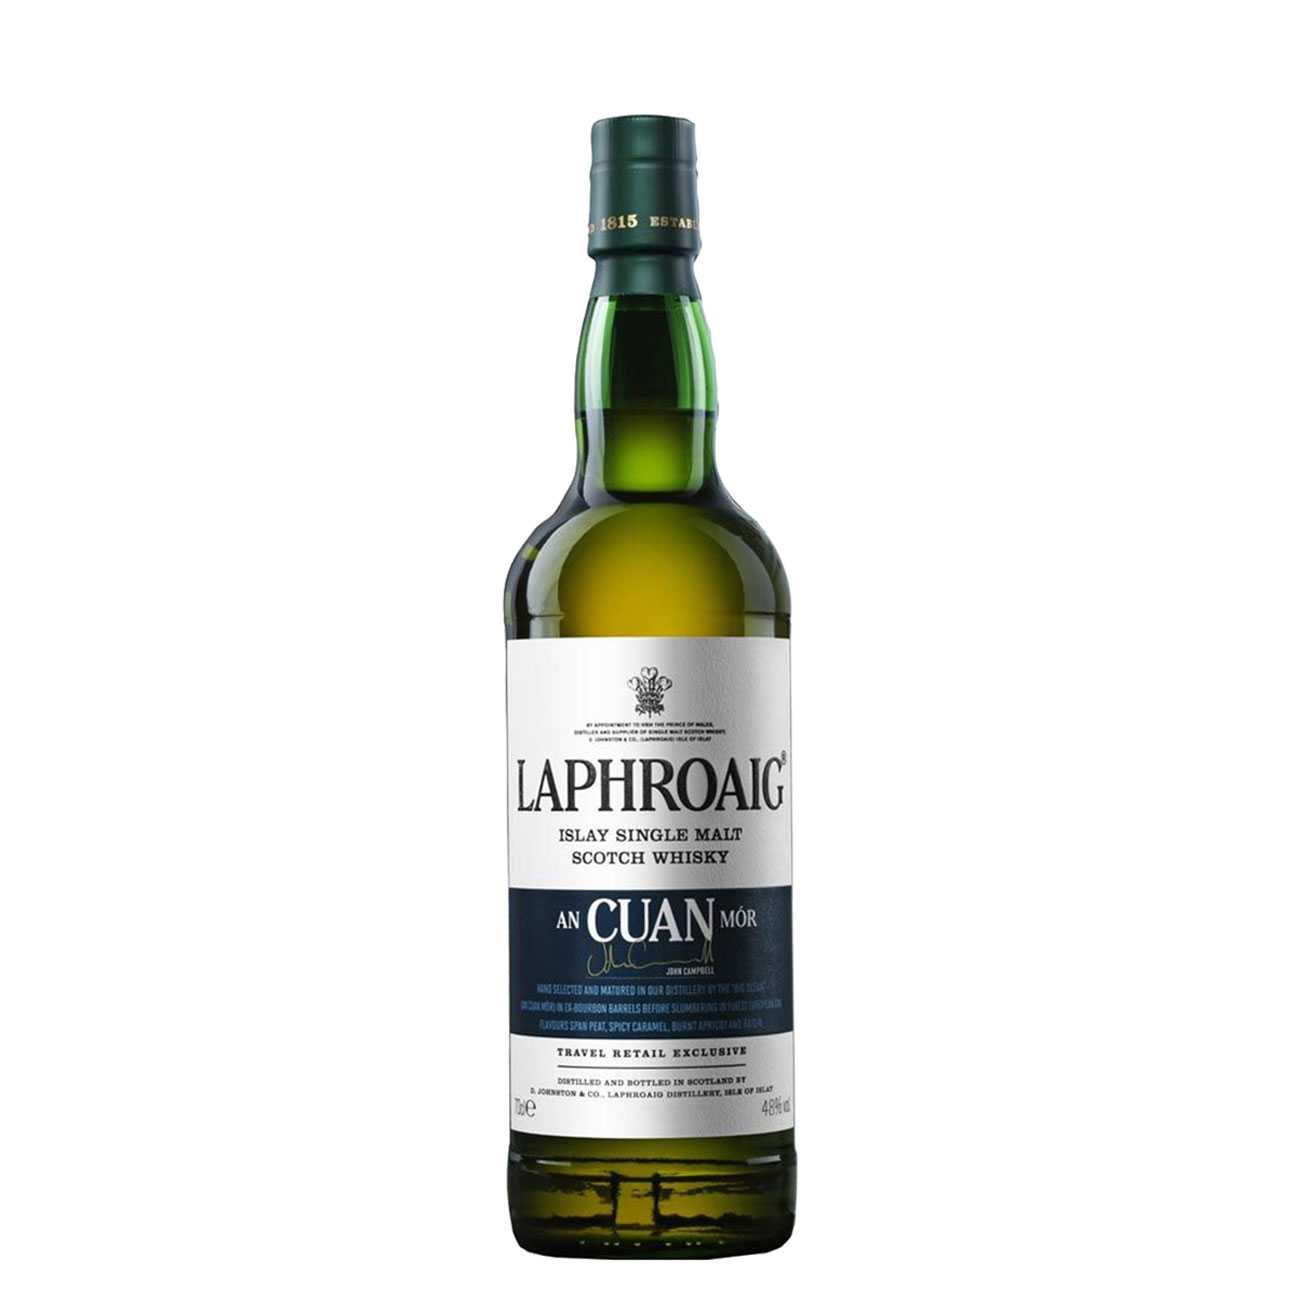 Whisky scotian, AN CUAN MOR 700 ML, Laphroaig